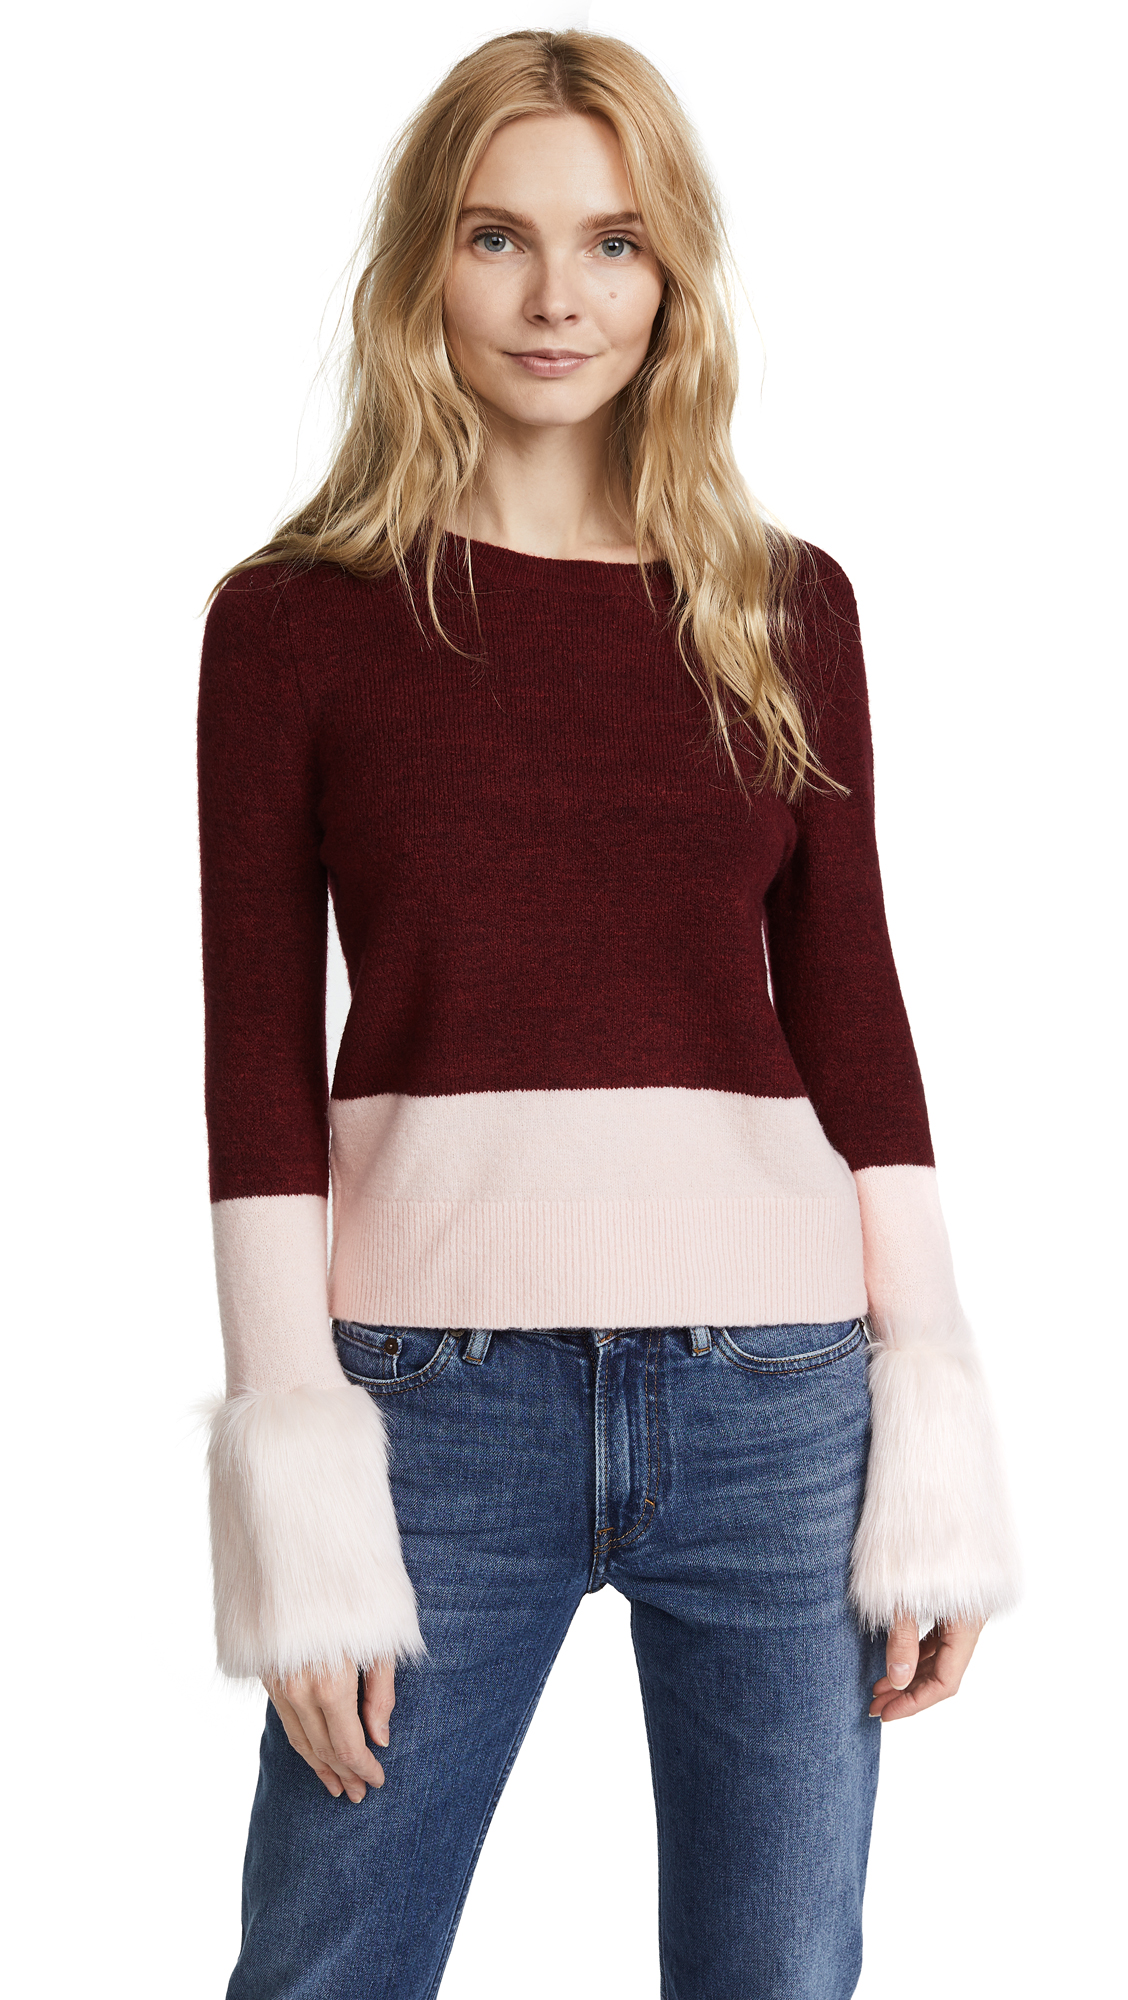 Club Monaco Tesslyn Sweater - Pale Pink